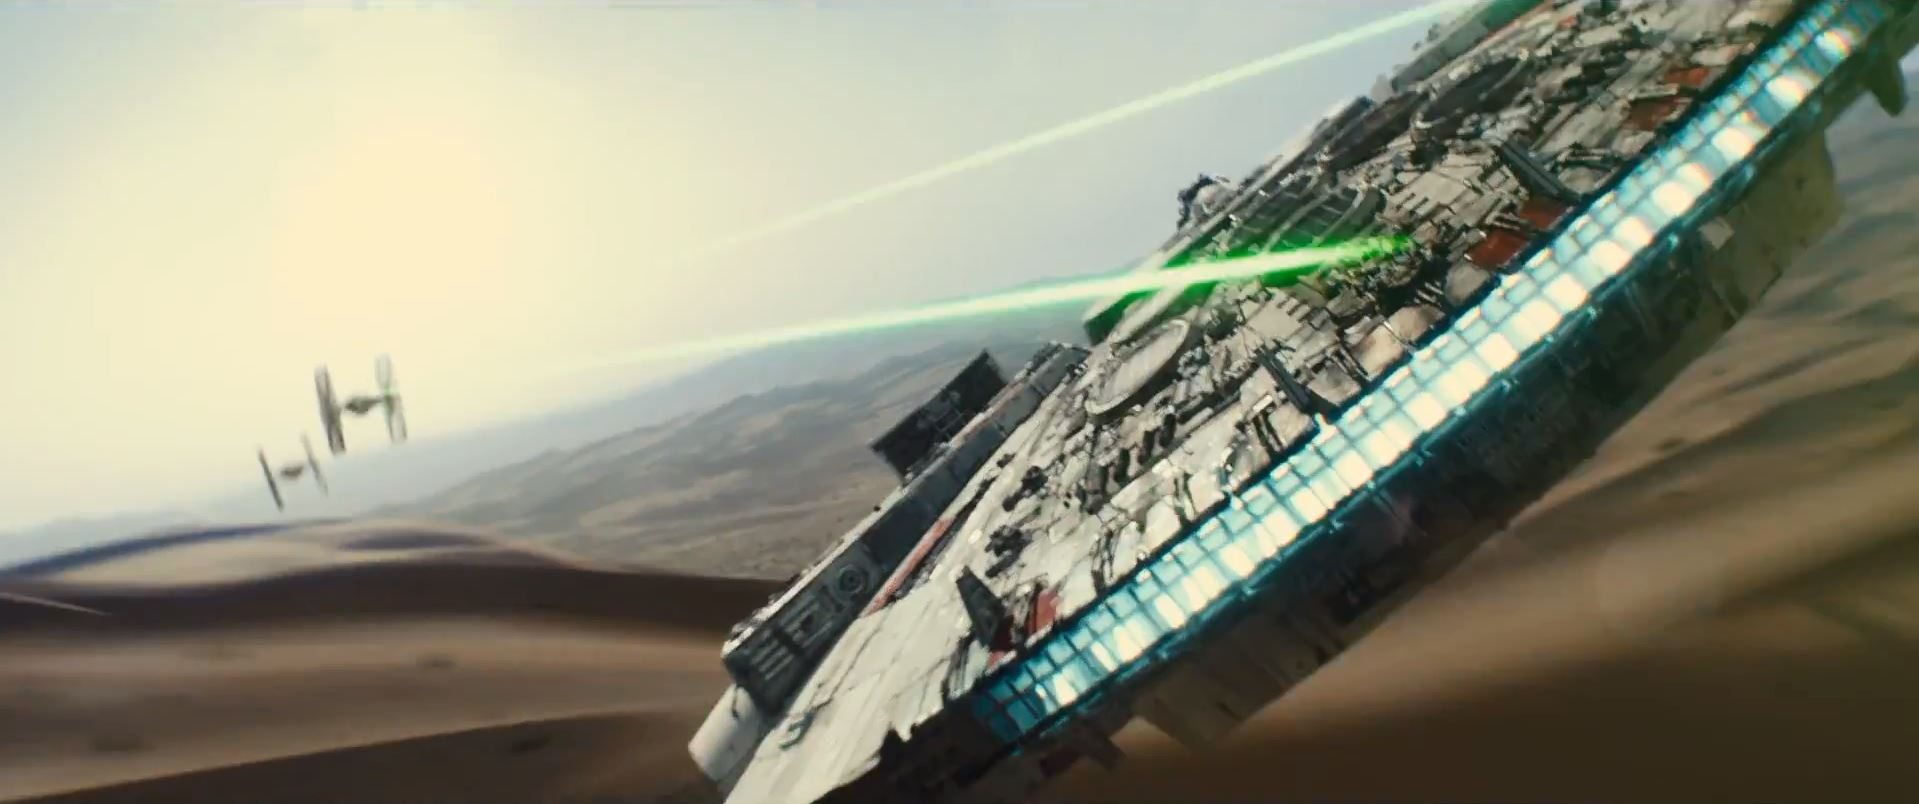 Millenium falcon and two tie fighters - Star Wars Episode 7 trailer released